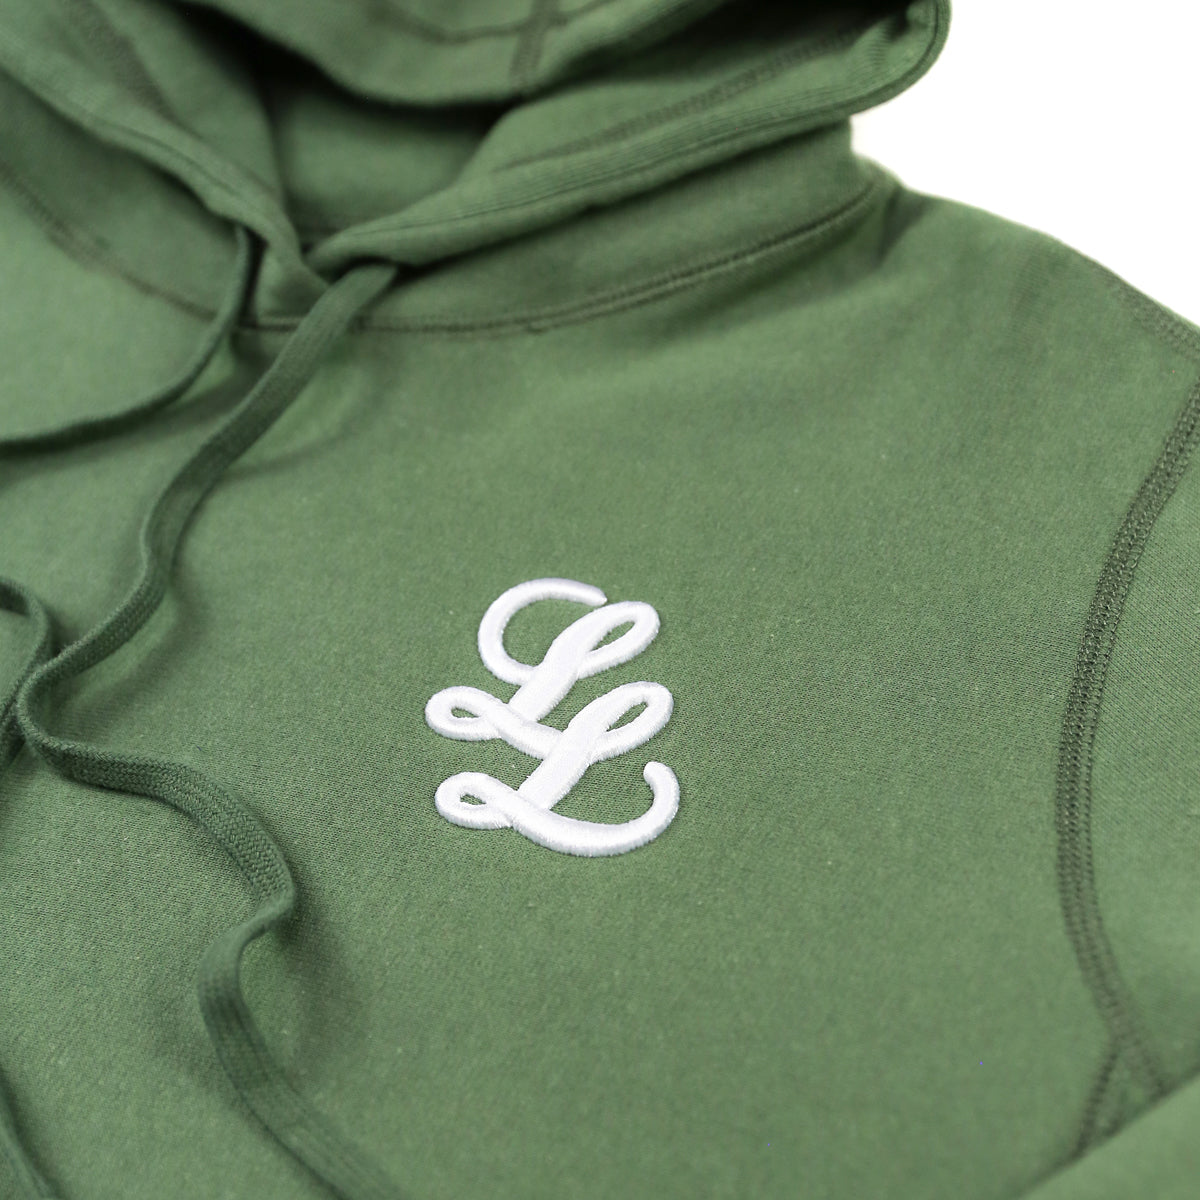 RAISED LL LOGO HOODED SWEATSHIRT